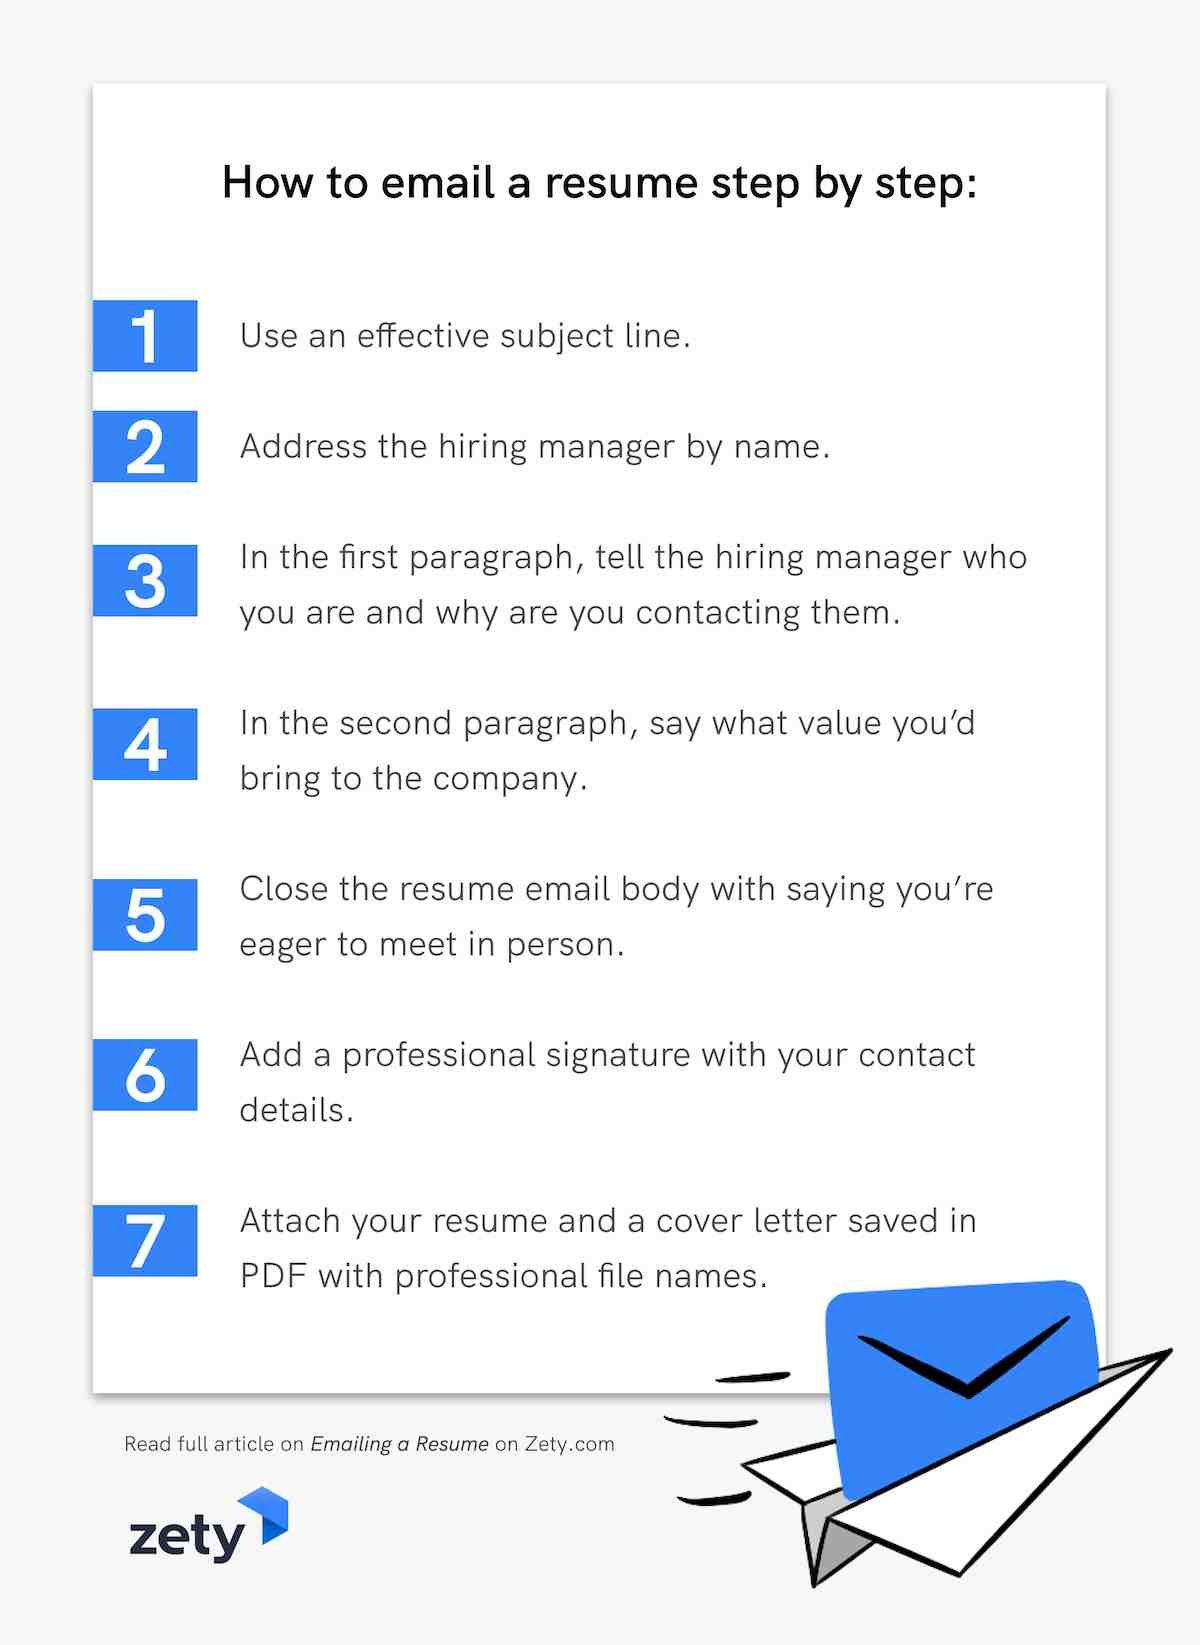 How to email a resume step by step